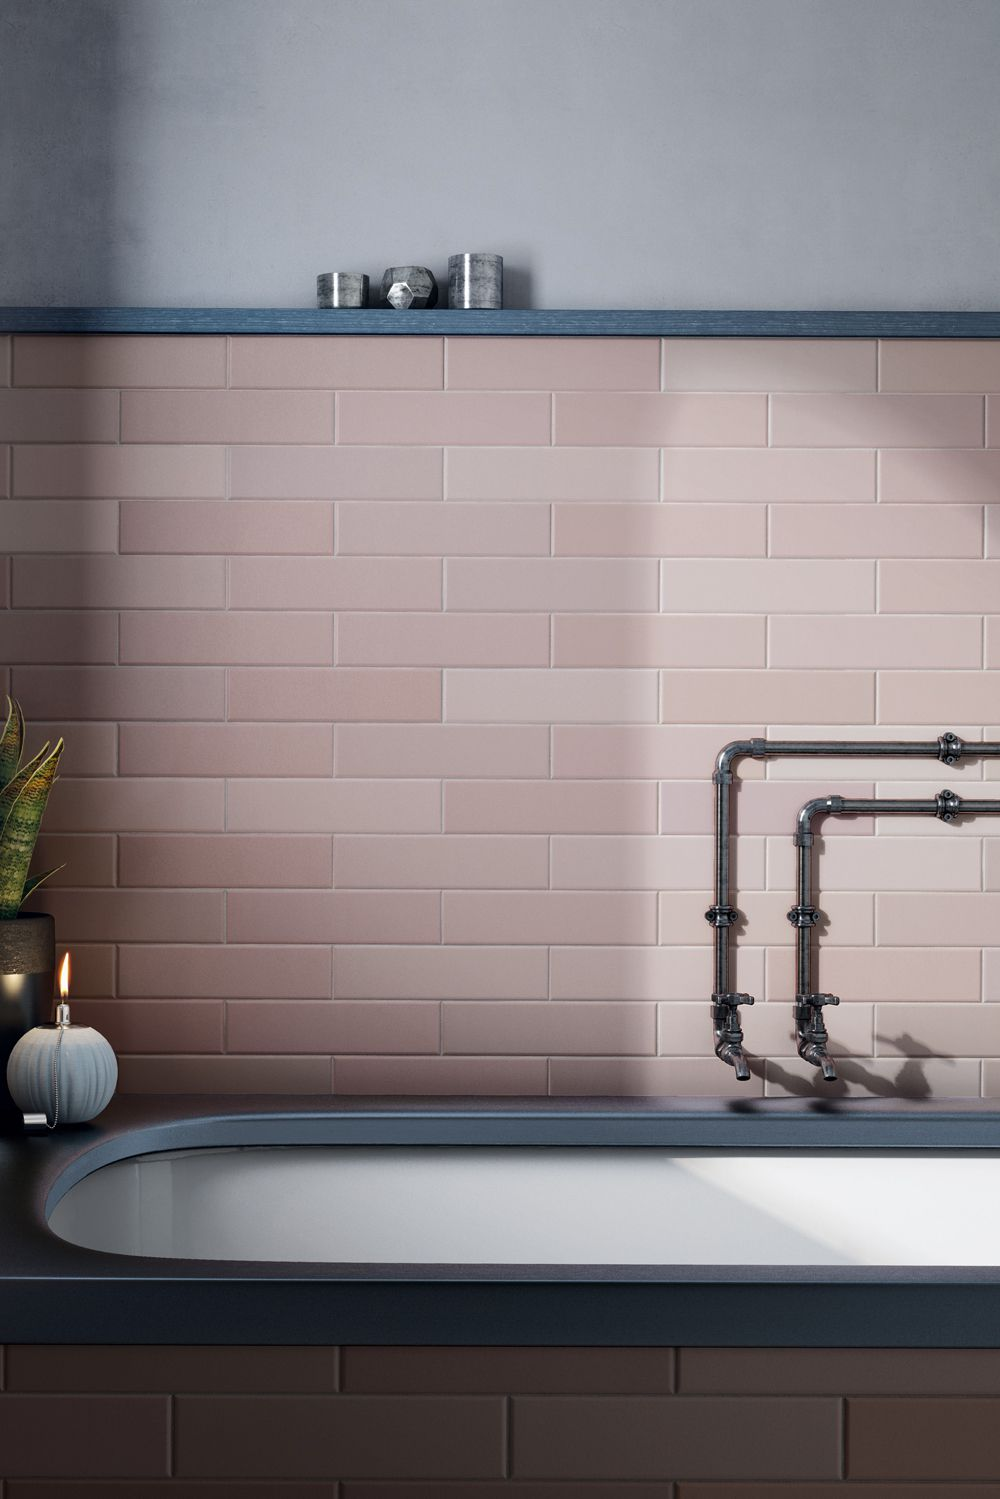 24 Of The Most Stylish Pink Bathroom Ideas For A Stunning Pink Bathroom Livingetc Livingetcdocument Documenttype